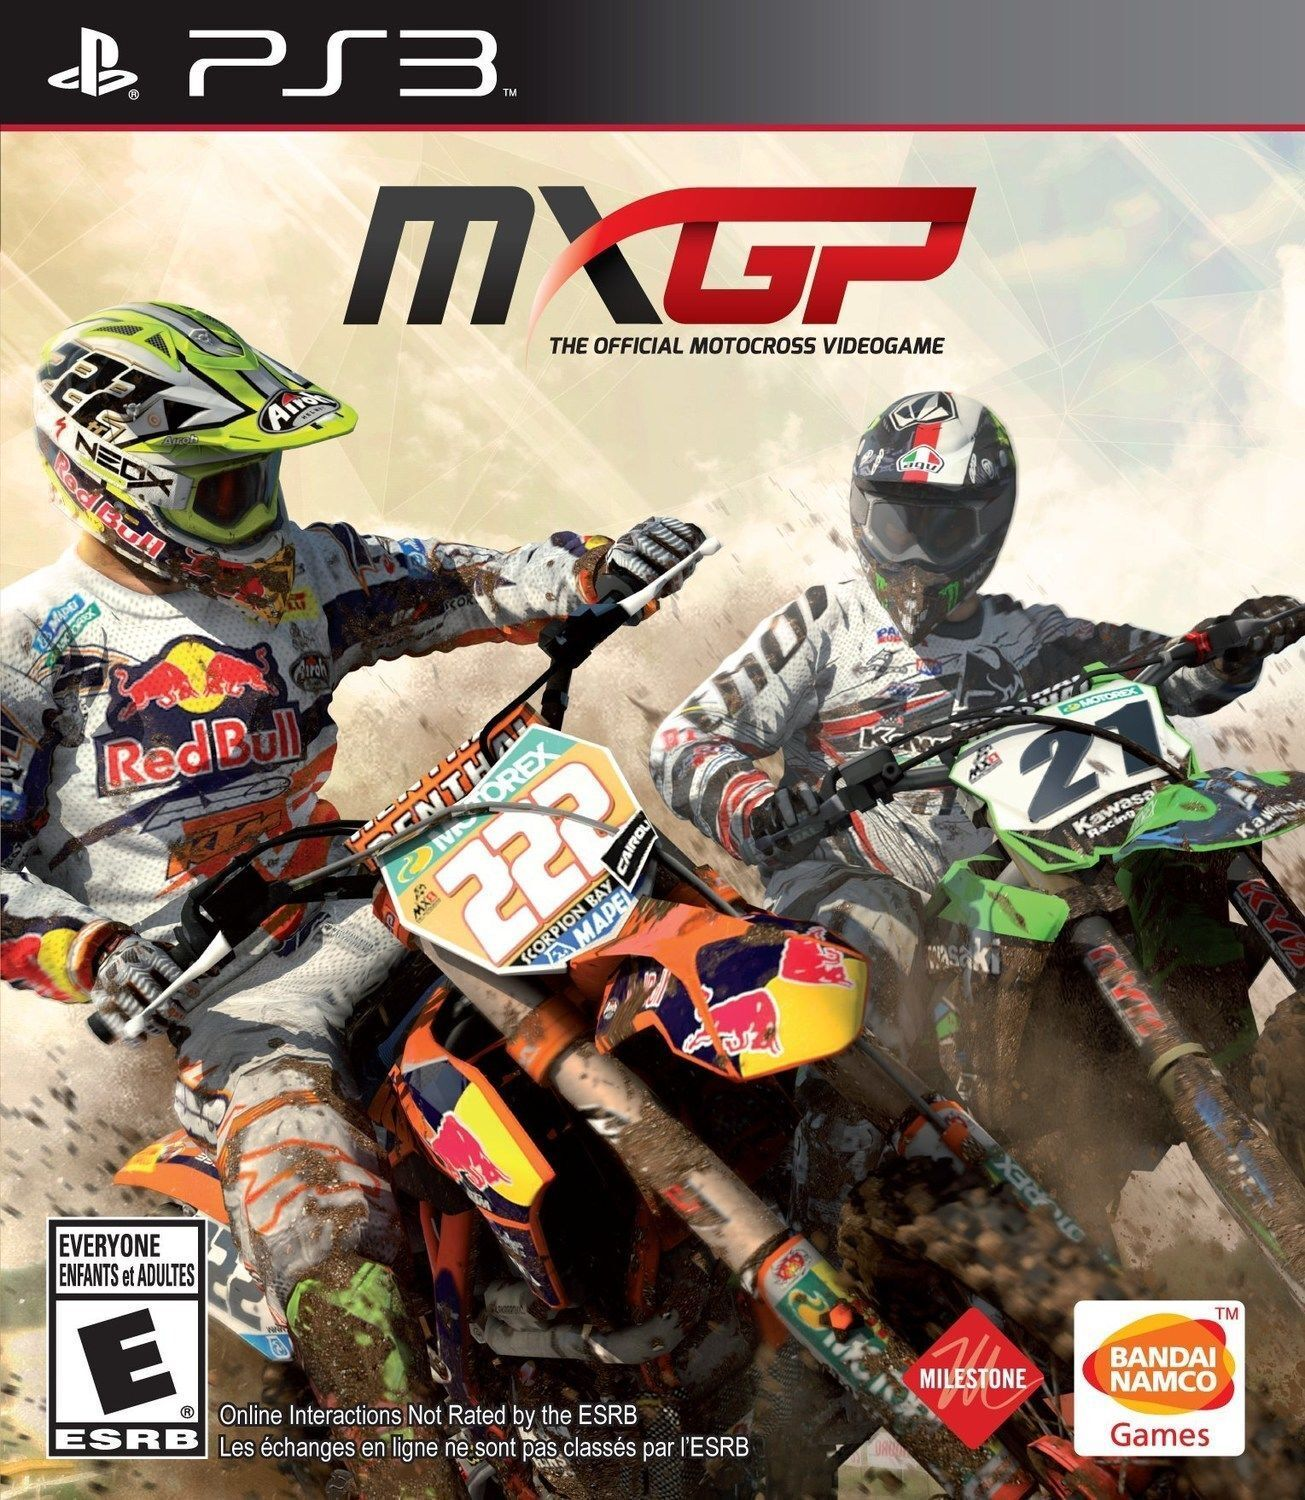 Mxgp the official motocross game released in 2014 for xbox 360